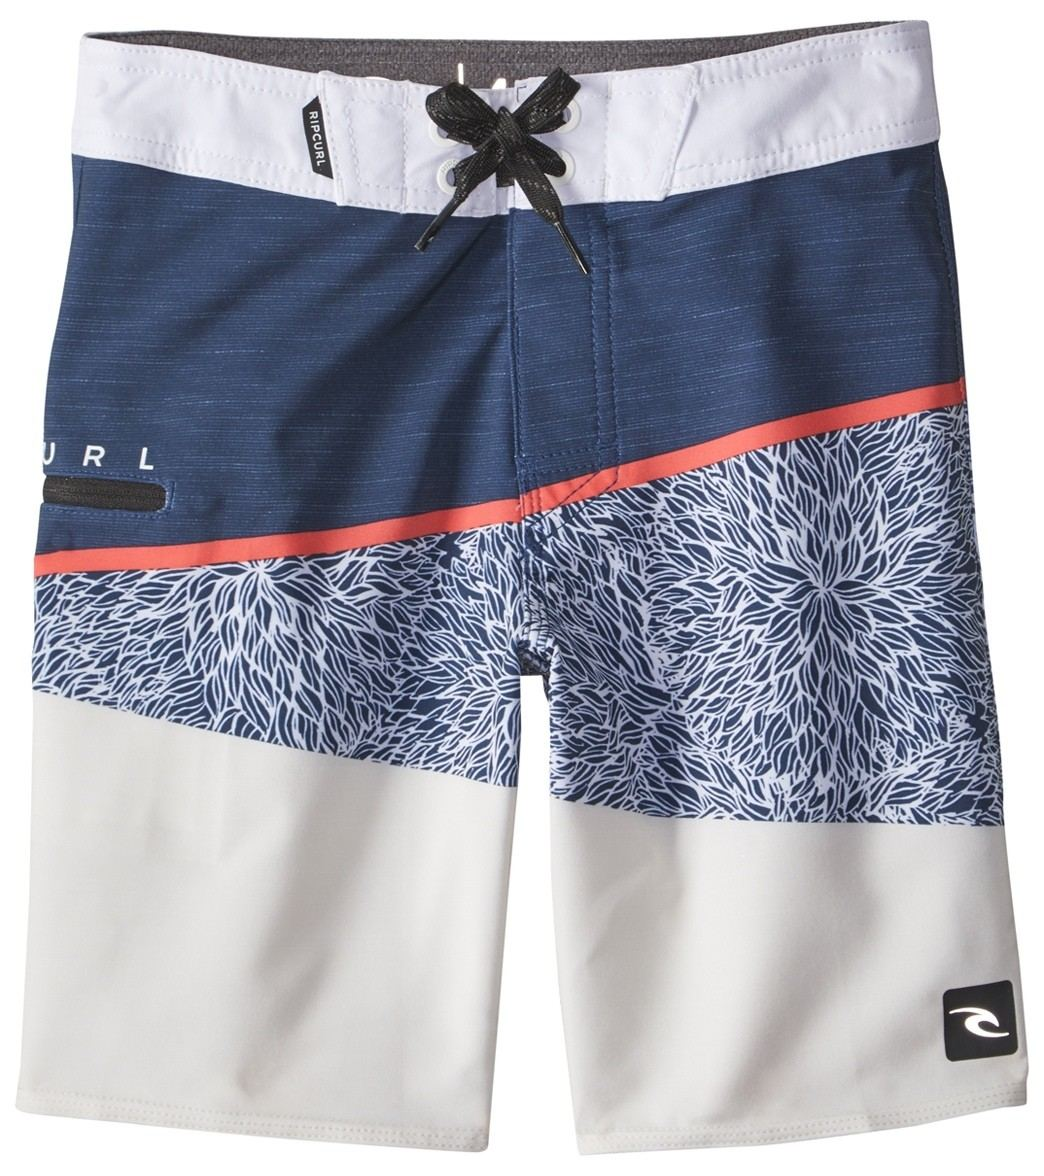 d43fd2a7b762 Rip Curl Boys' Mirage Wedge Boardshort (8-20) at SwimOutlet.com ...